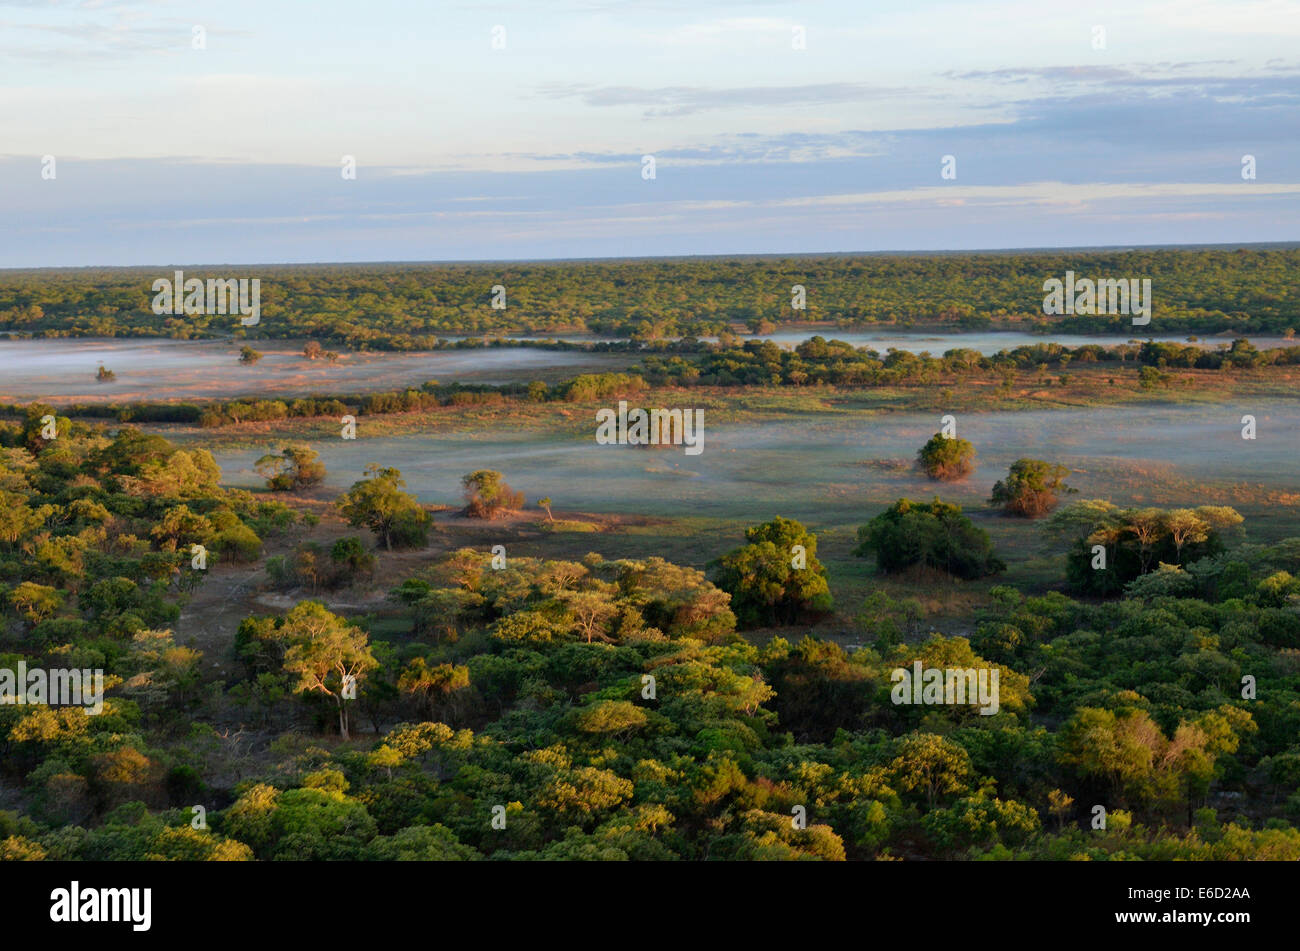 Aerial view, early morning in the Kasanka National Park, Zambia - Stock Image